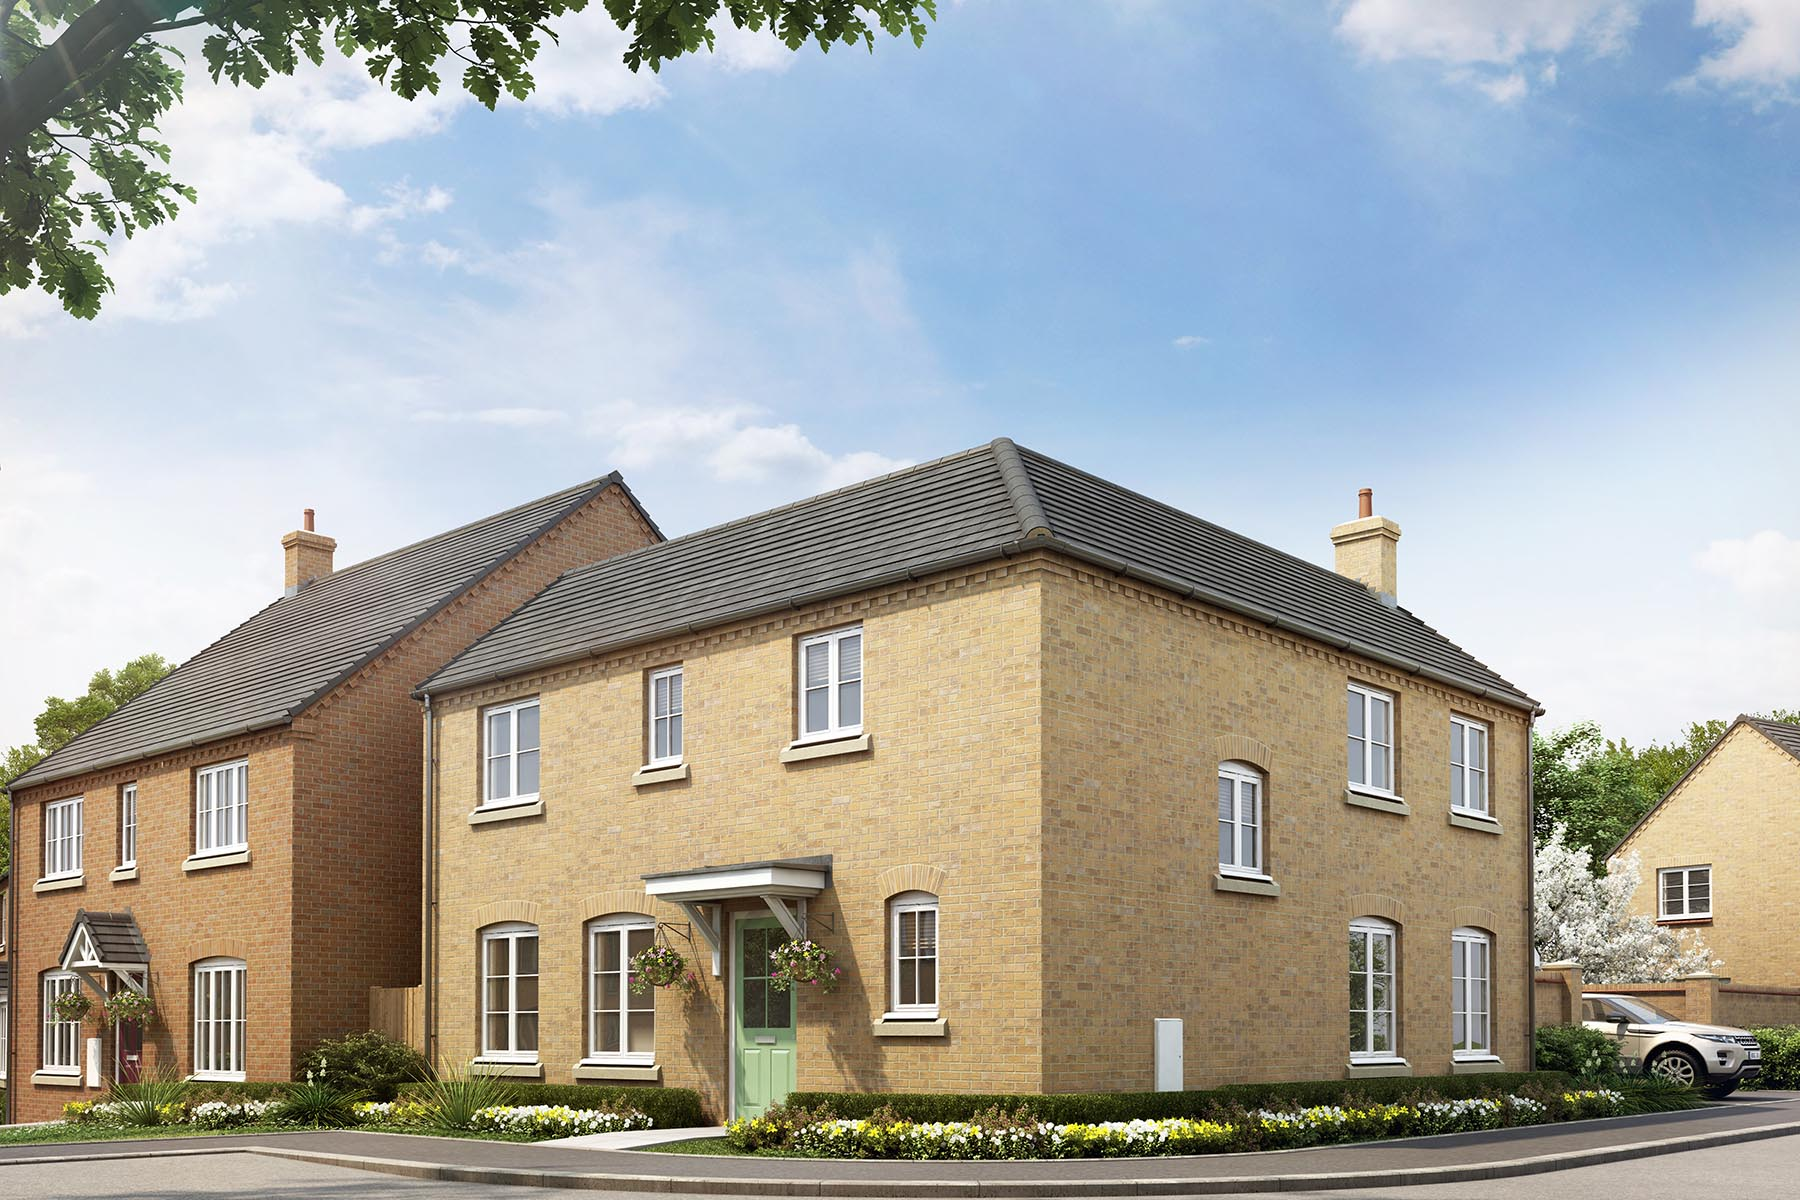 Windmill Meadow - New Homes in Branston | Taylor Wimpey